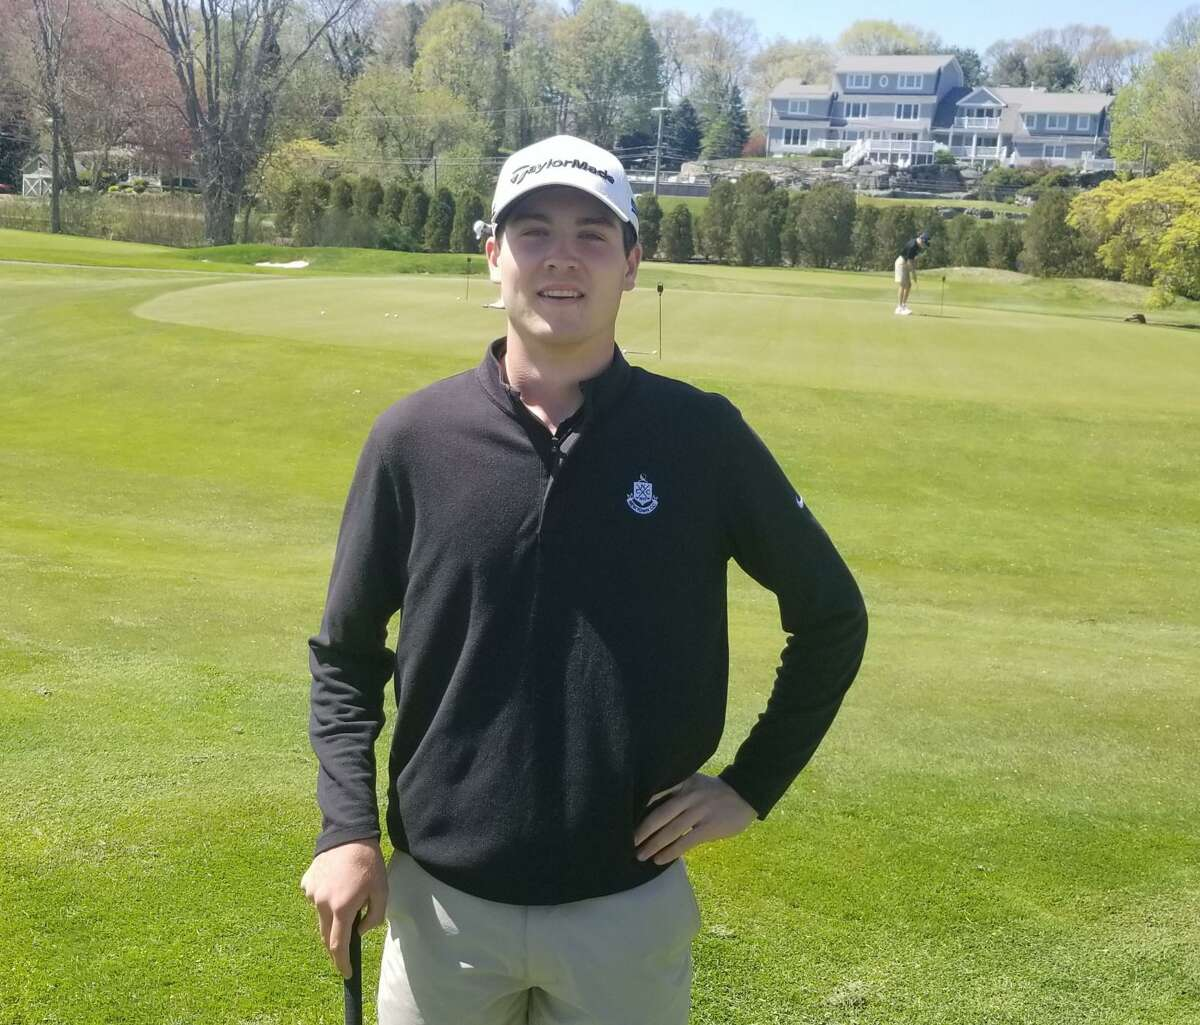 Senior Kyle St. Pierre is the No. 1 golfer in Shelton's lineup.